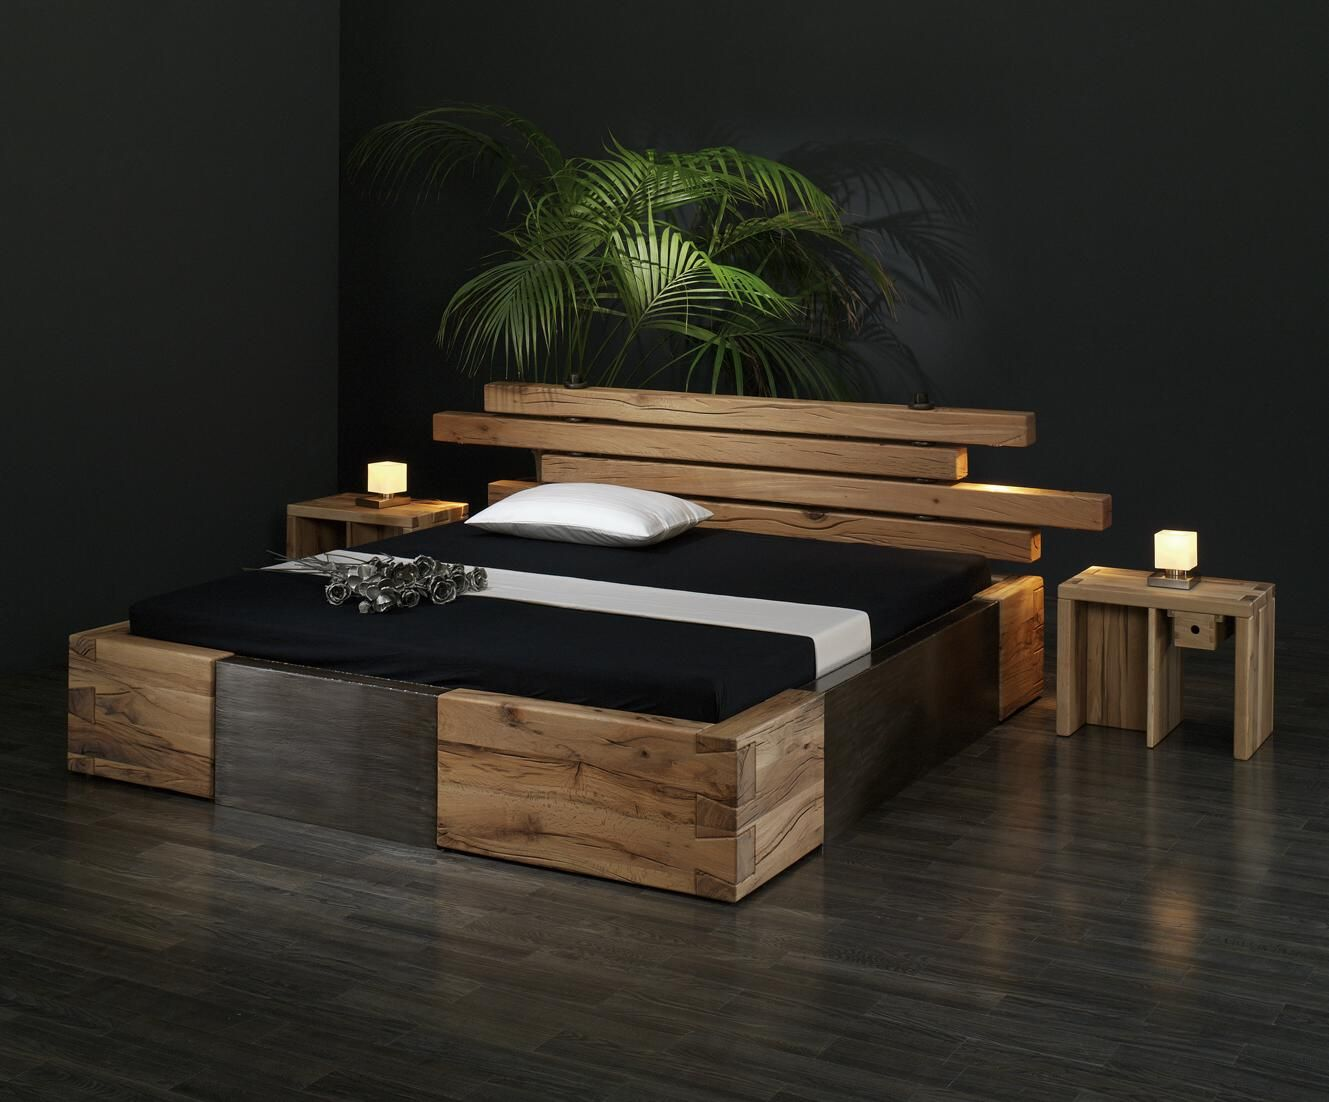 Holzbett rustikal  holz bett design - Google Search | Bedroom | Pinterest | Google ...